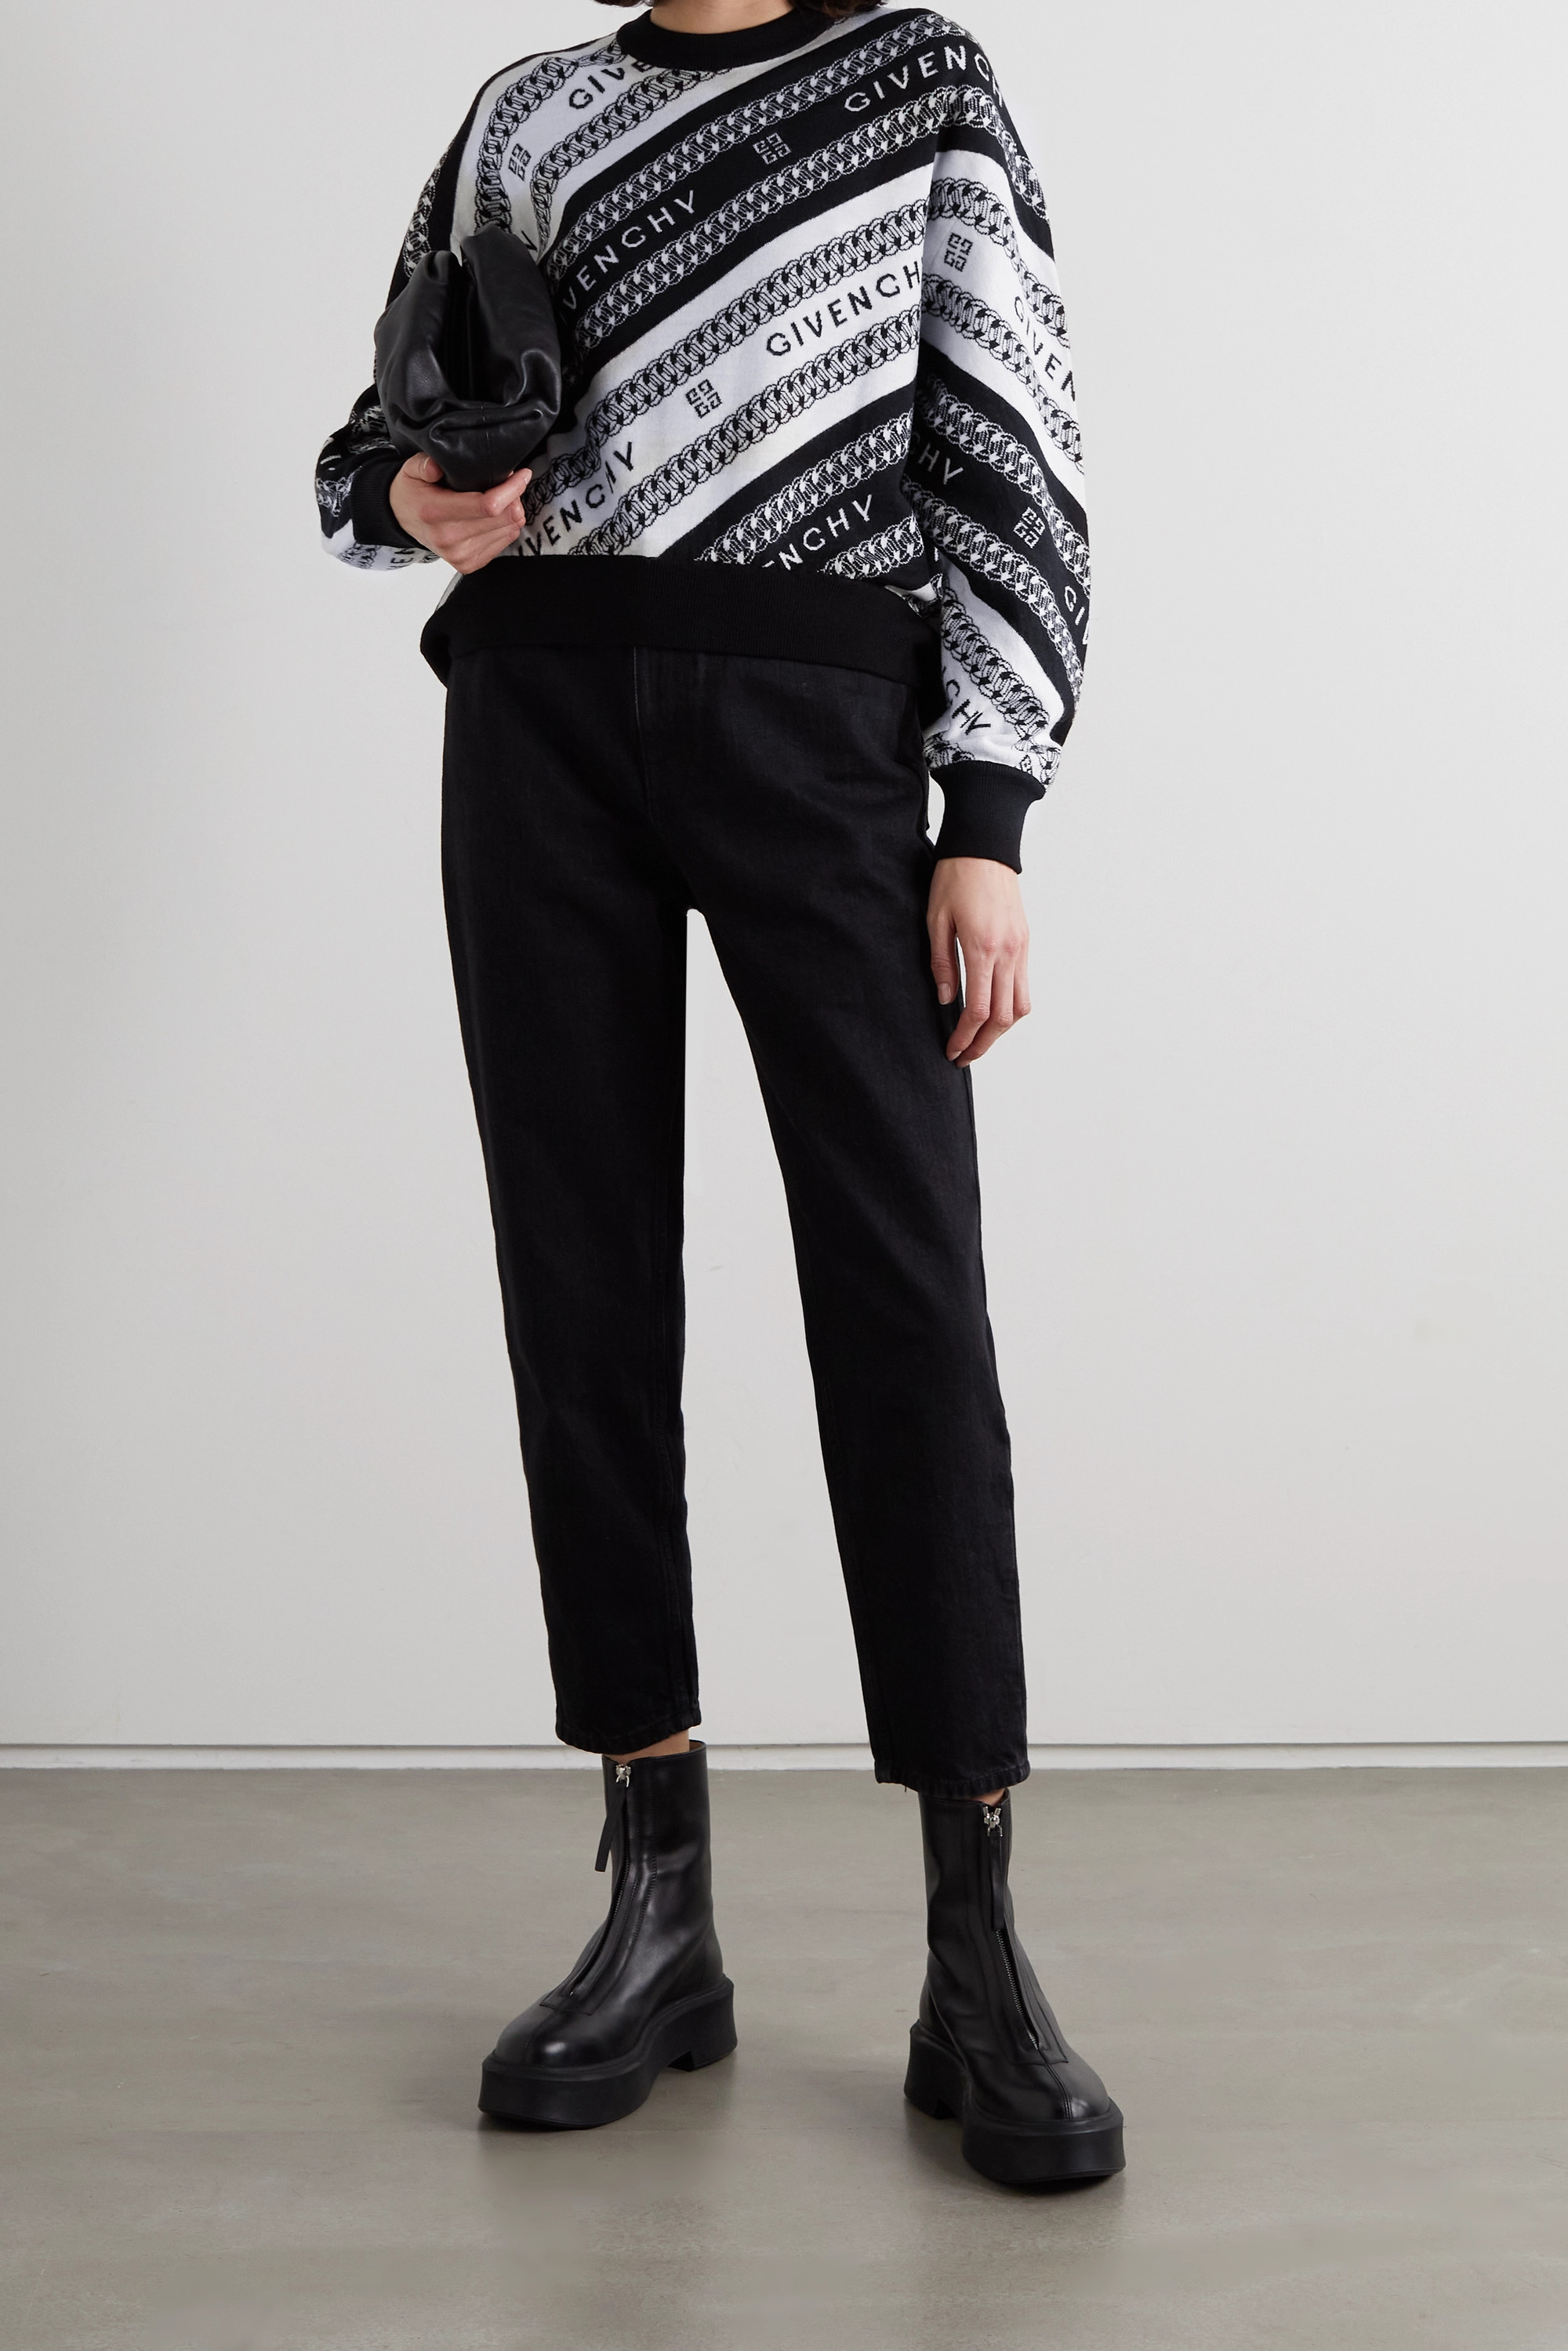 Givenchy Wollpullover mit Intarsienmuster